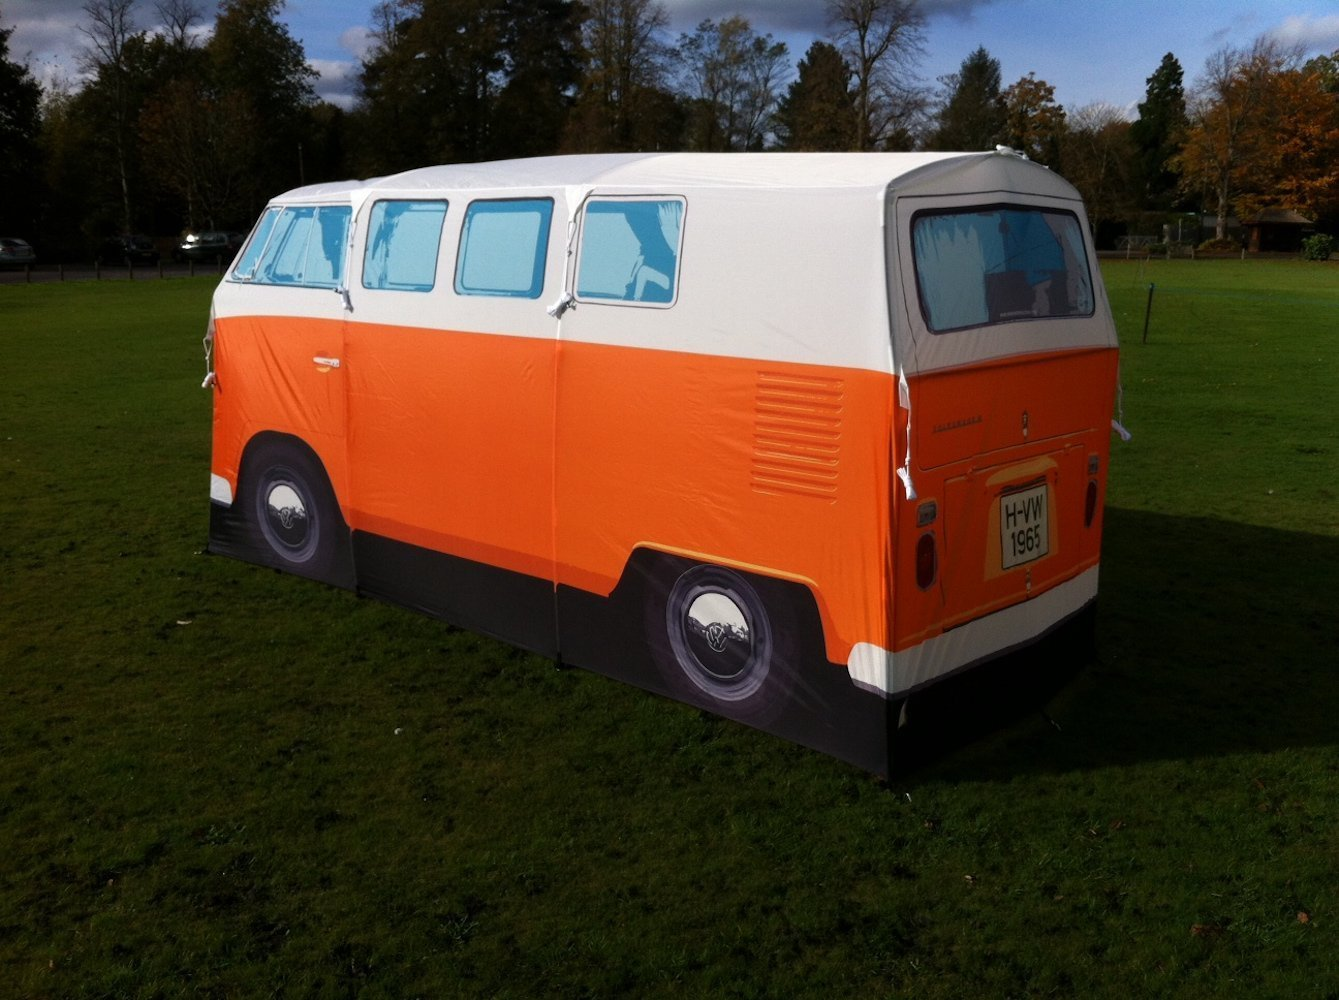 71nduzzq4el-_sl1339_ & A Volkswagen microbus tent for camping or just hanging out ...